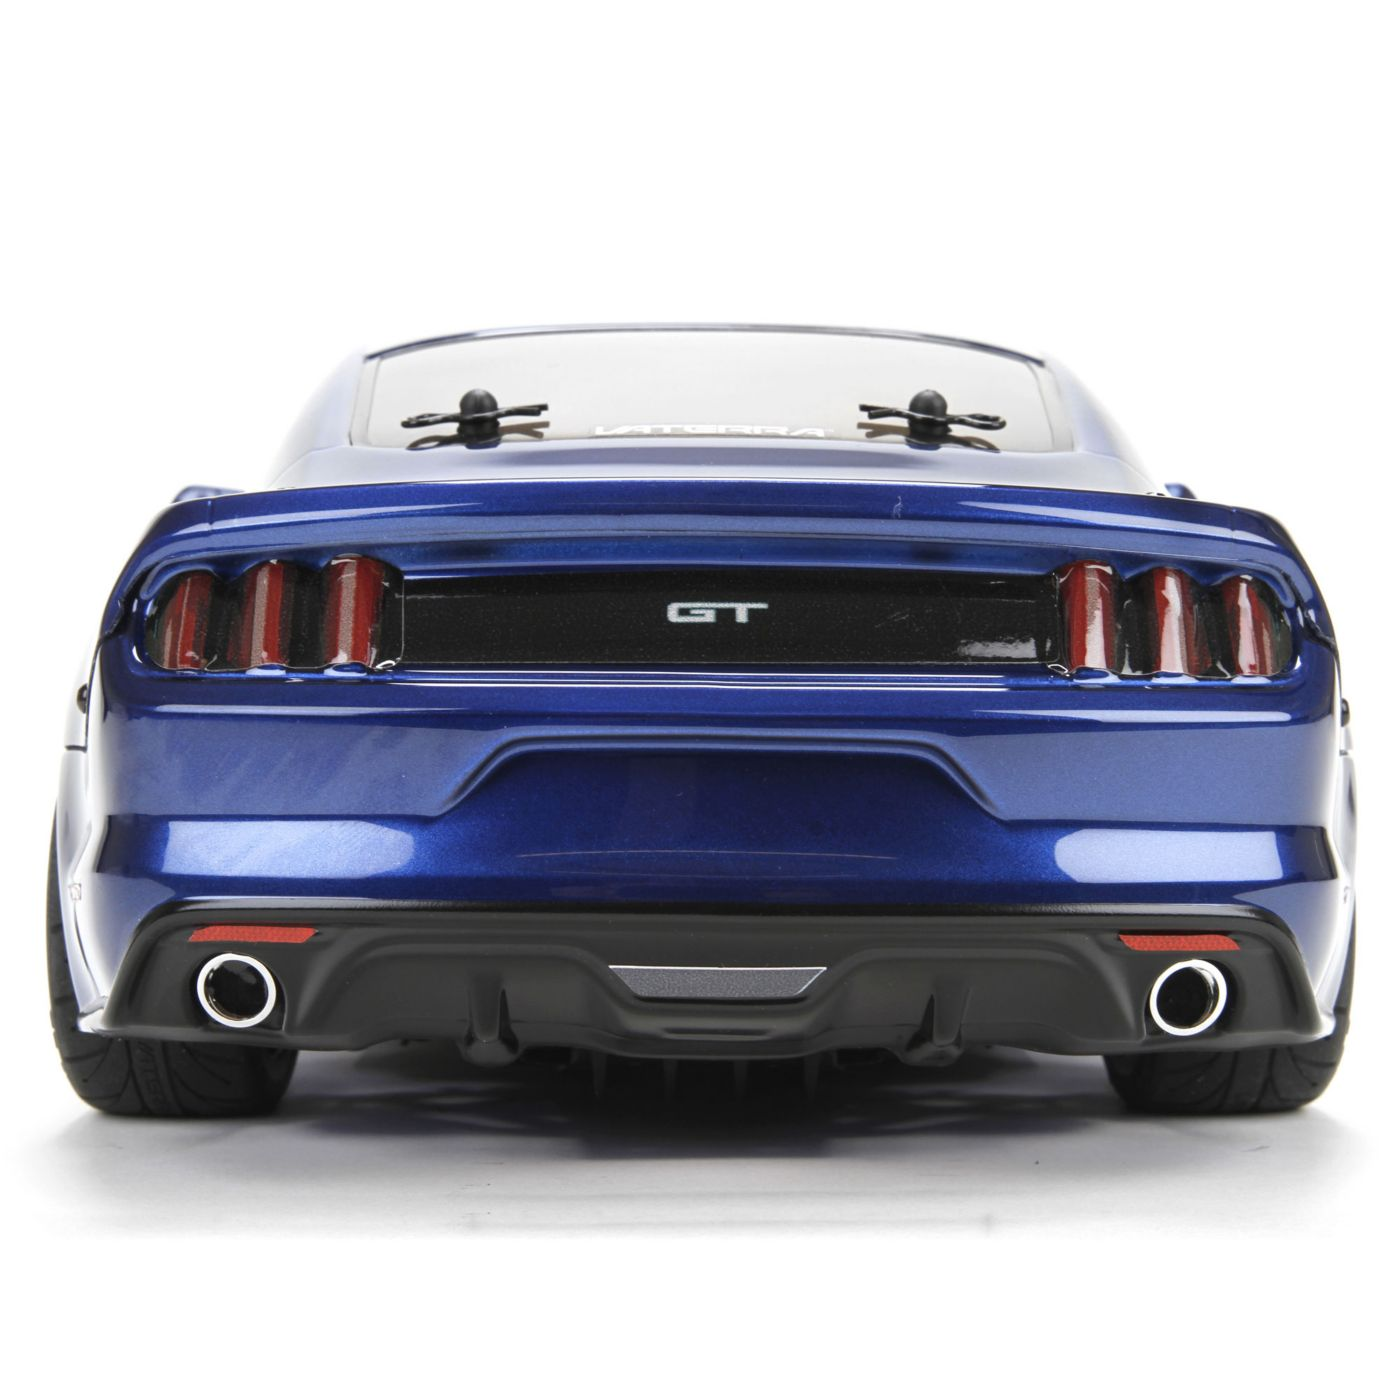 2015 Ford Mustang GT photo - 1